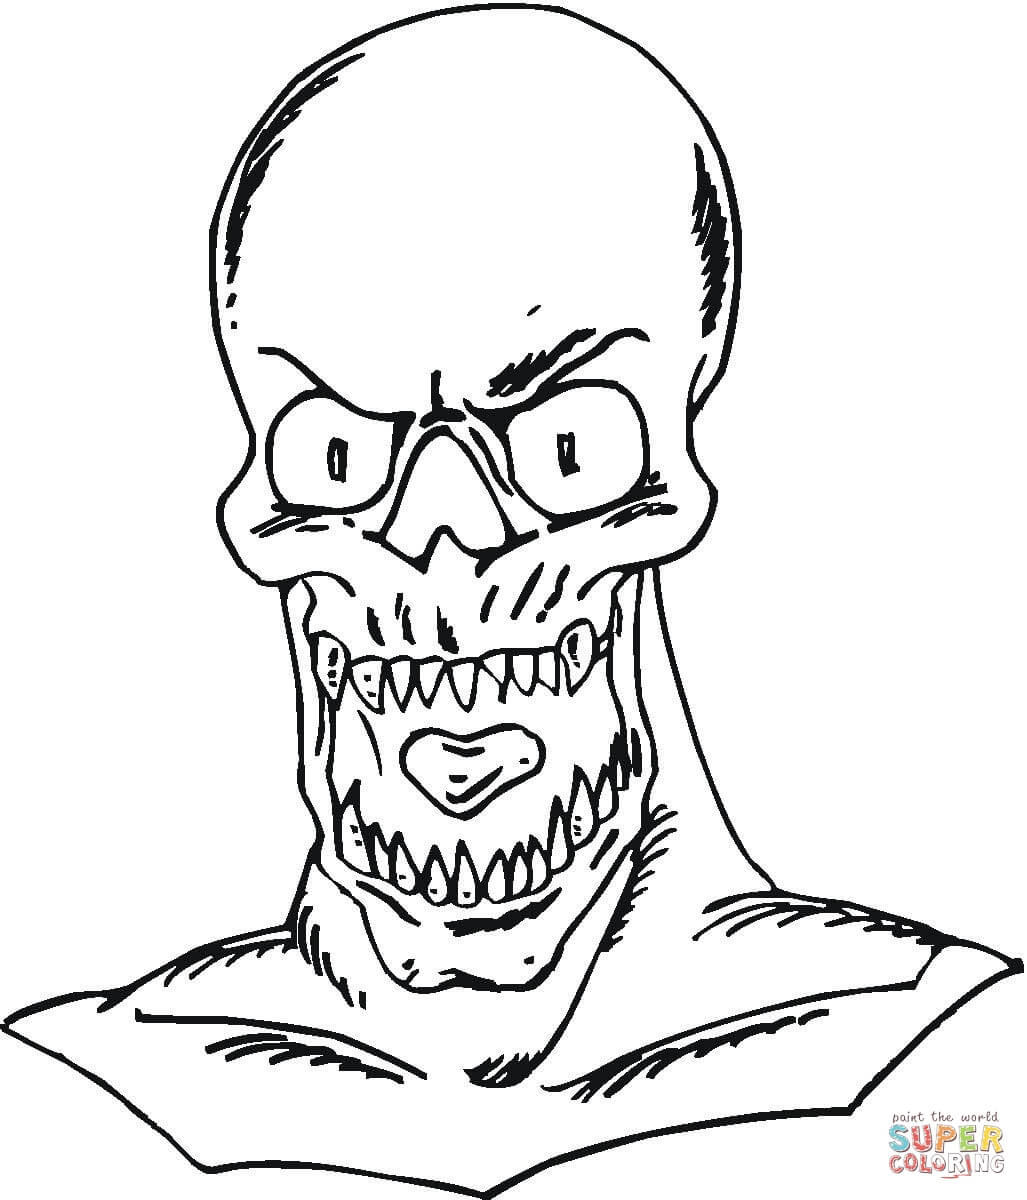 Scary Monsters Drawing at GetDrawings.com | Free for personal use ...